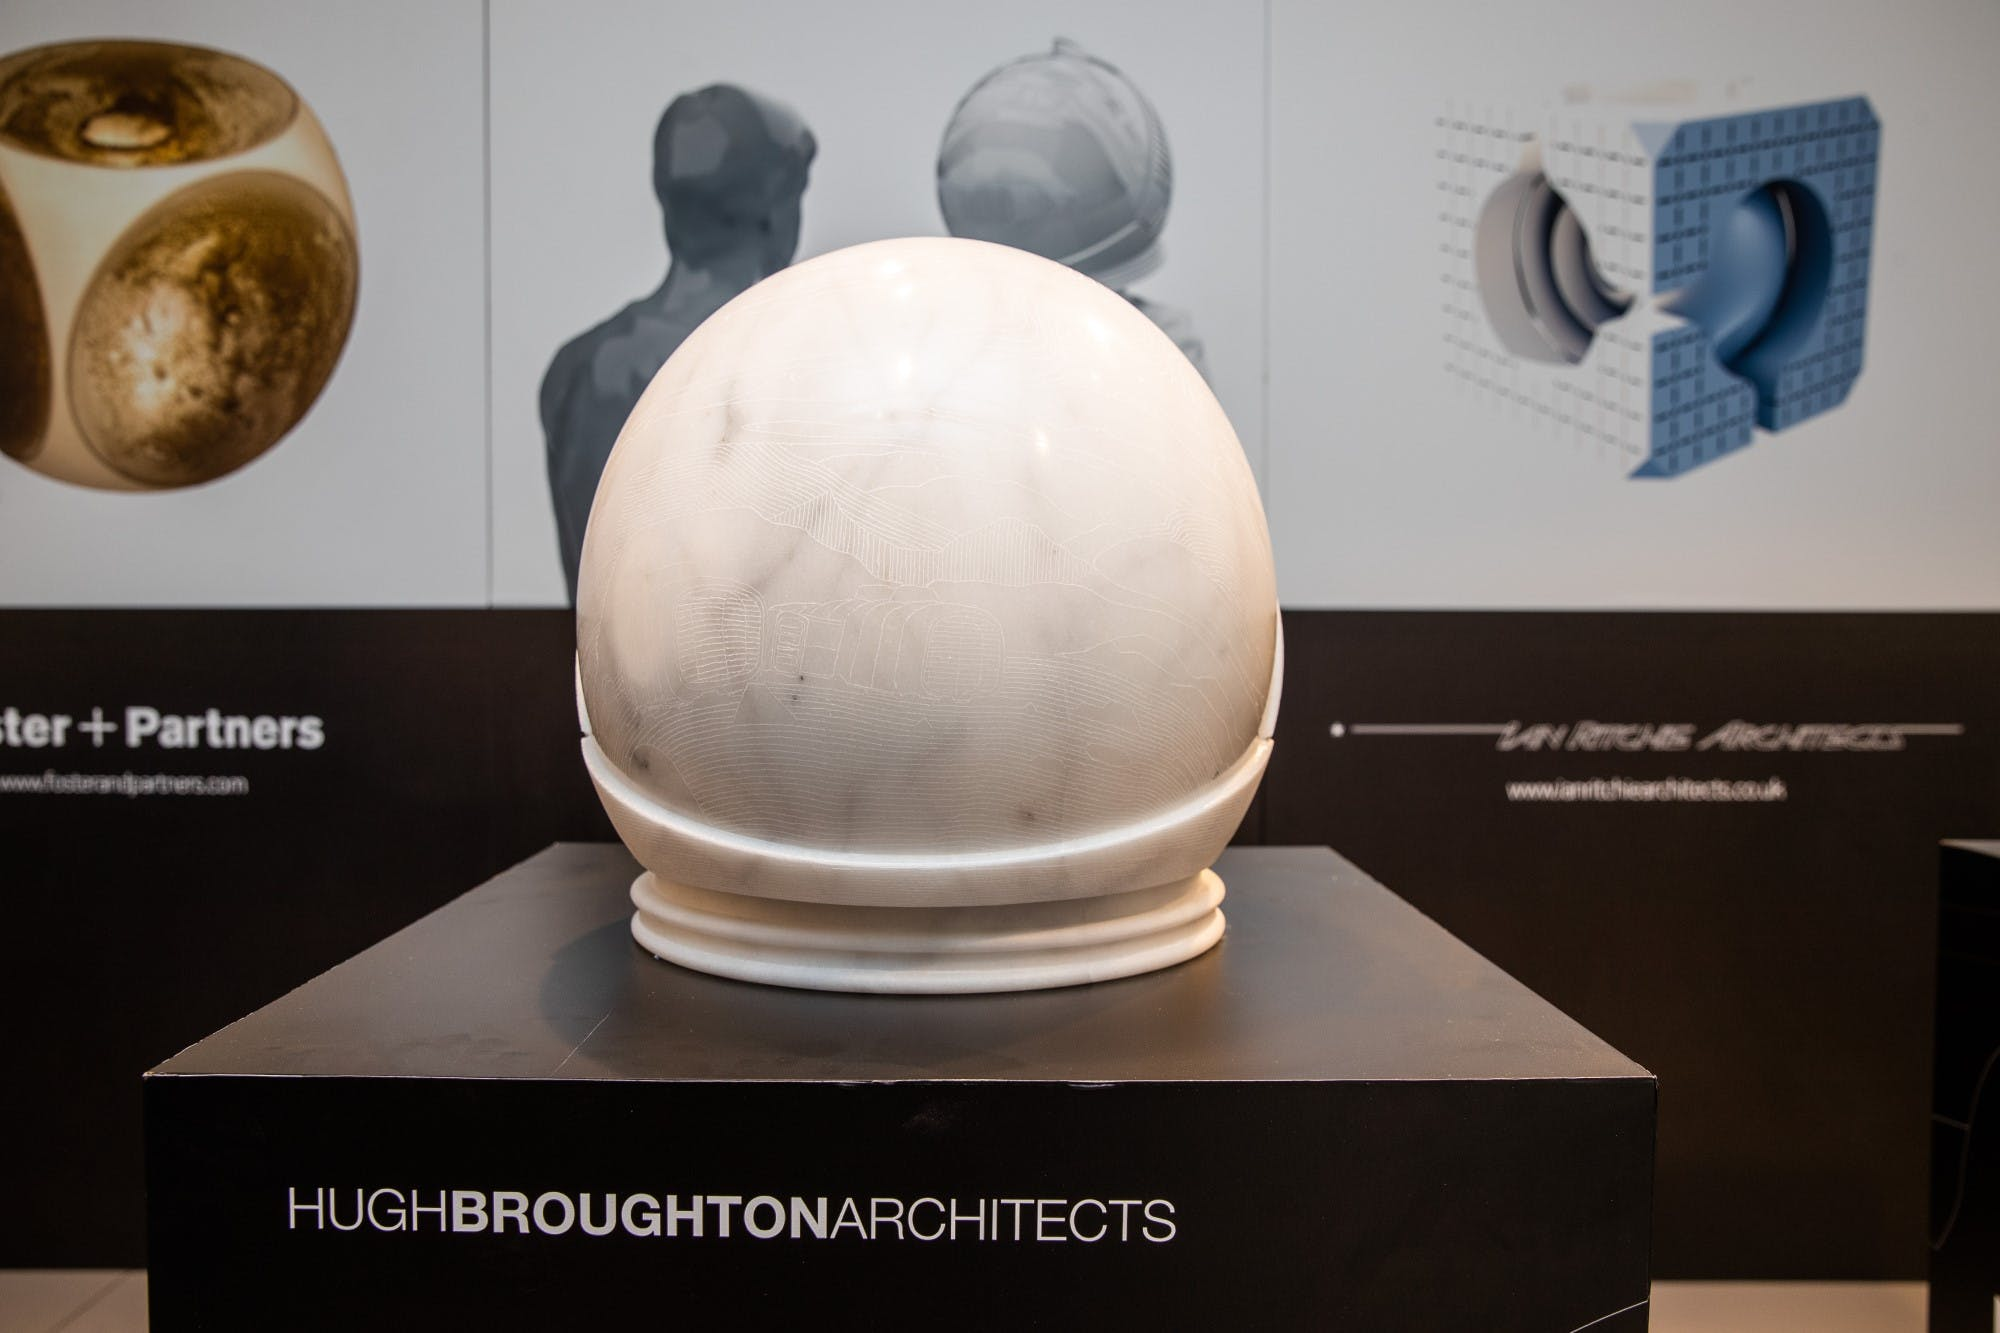 Image of Hugh Broughton Architects Sculpture 4 in Cosentino Announces the Winners of its Carved in Stone Competition - Cosentino